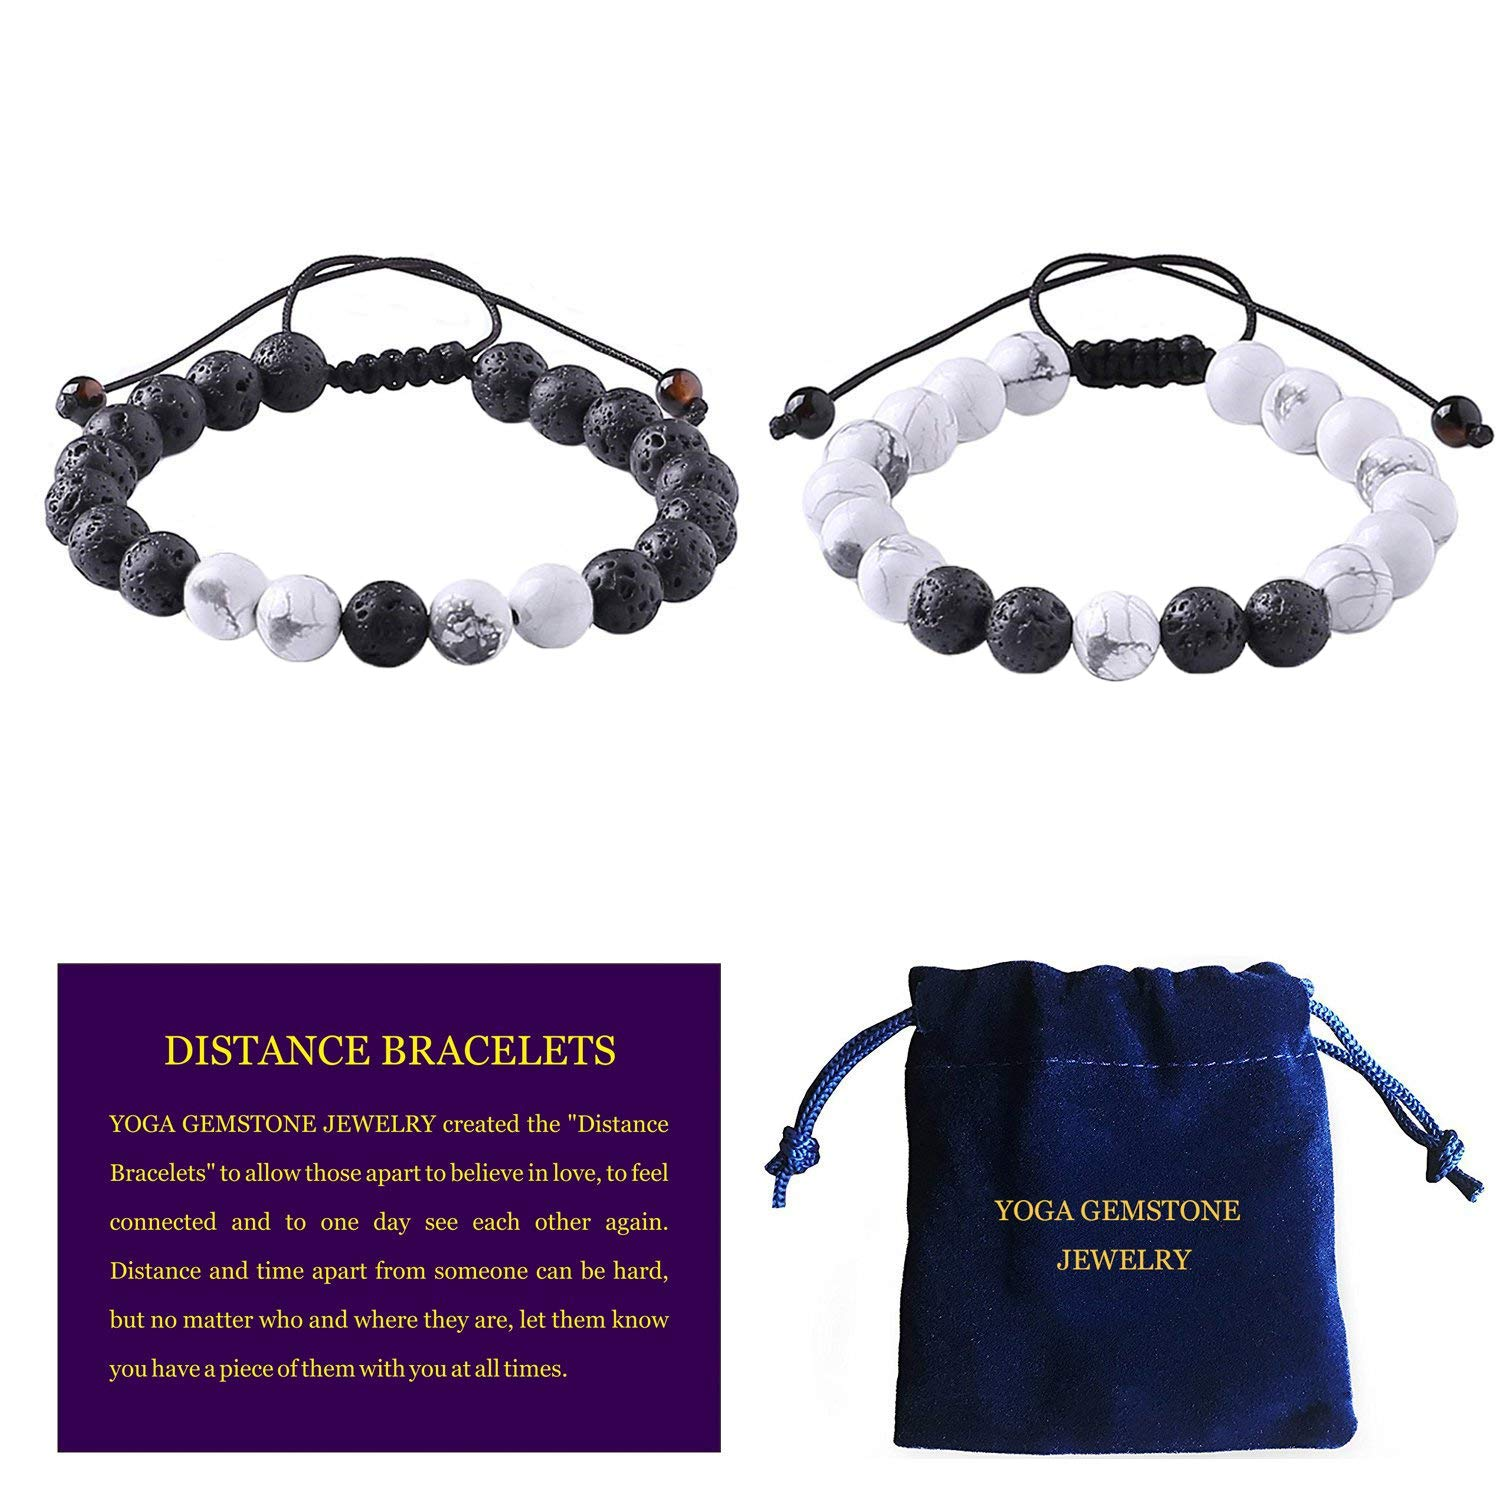 YOGA GEMSTONE JEWELRY Distance Bracelets With Jewelry Bag & Meaning Card | Adjustable Size | Friendship Relationship Couples His Hers | Black Agate Onyx White Howlite Bracelet YG-CP